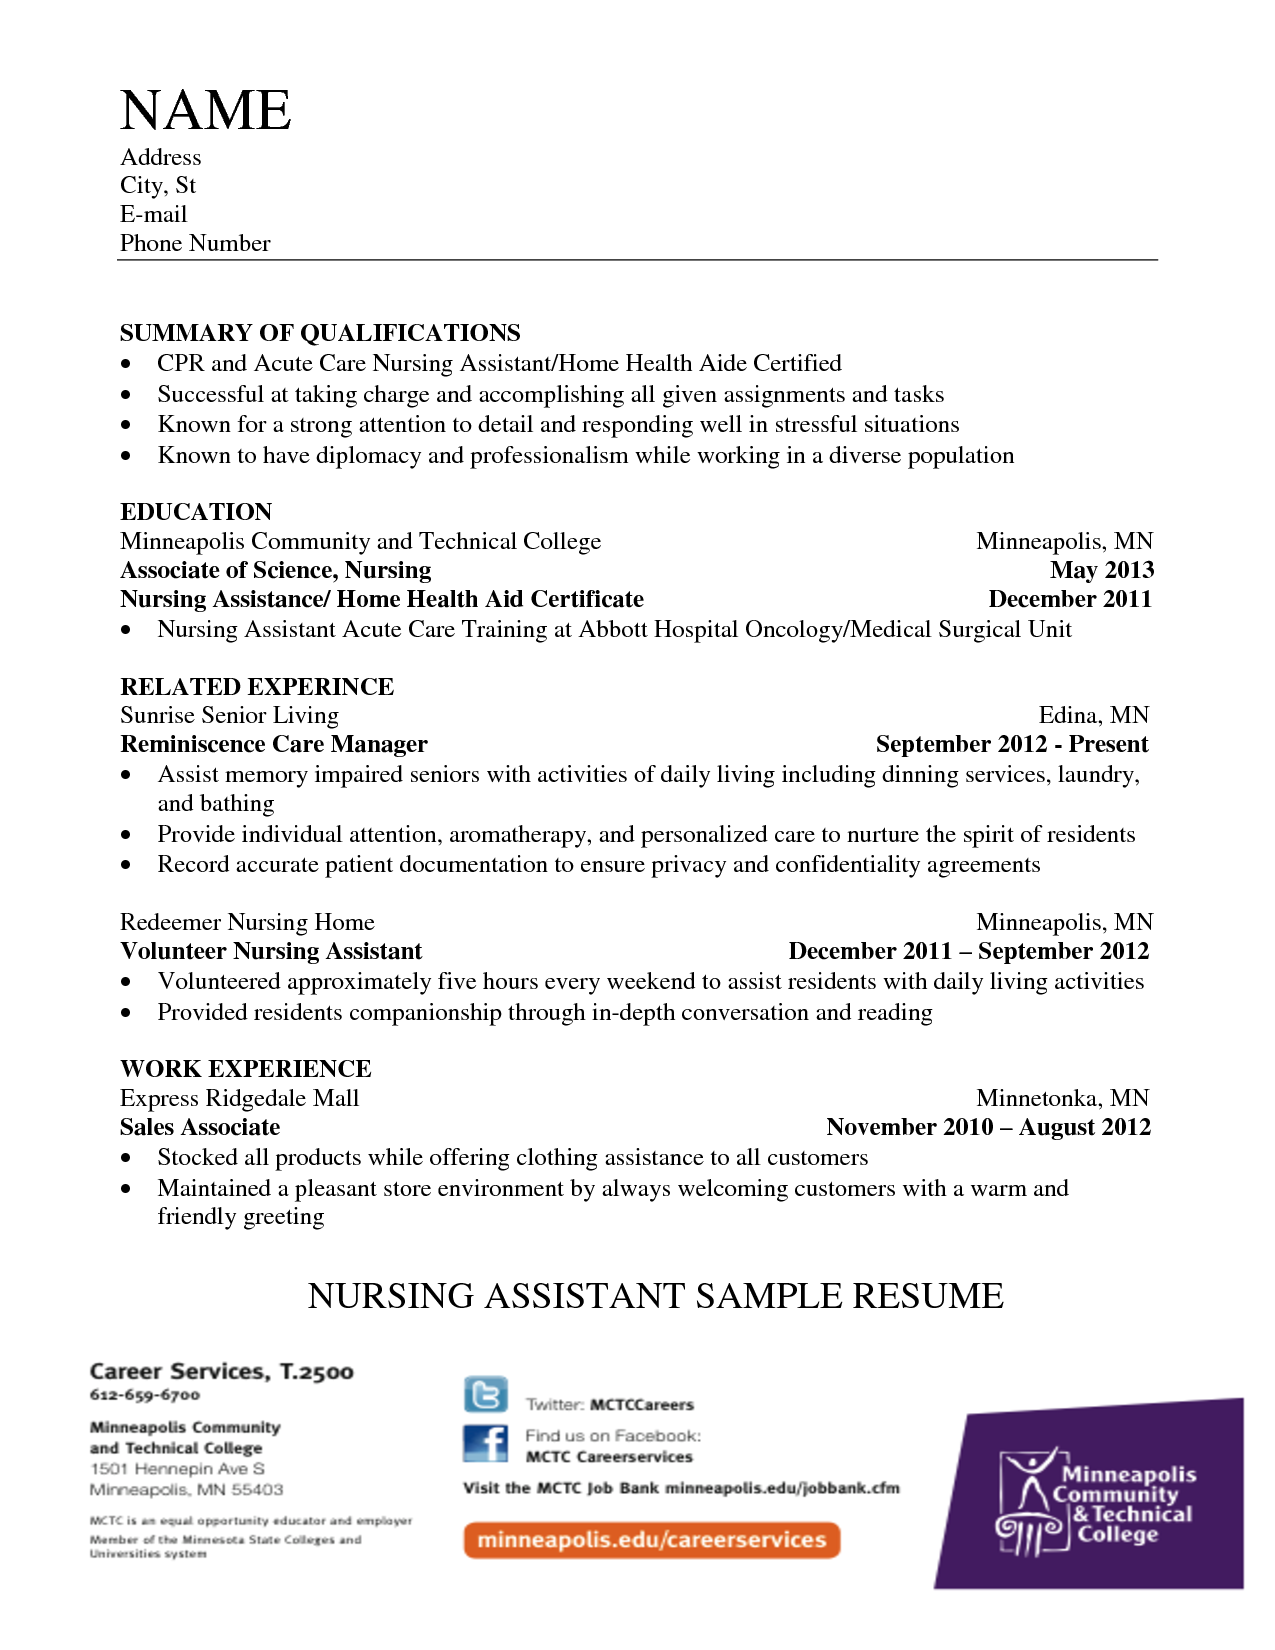 Home health nursing assistant resume sample resume pinterest best cna resume samples nursing assistant template example sample for aide cover letter with best free home design idea inspiration yelopaper Images